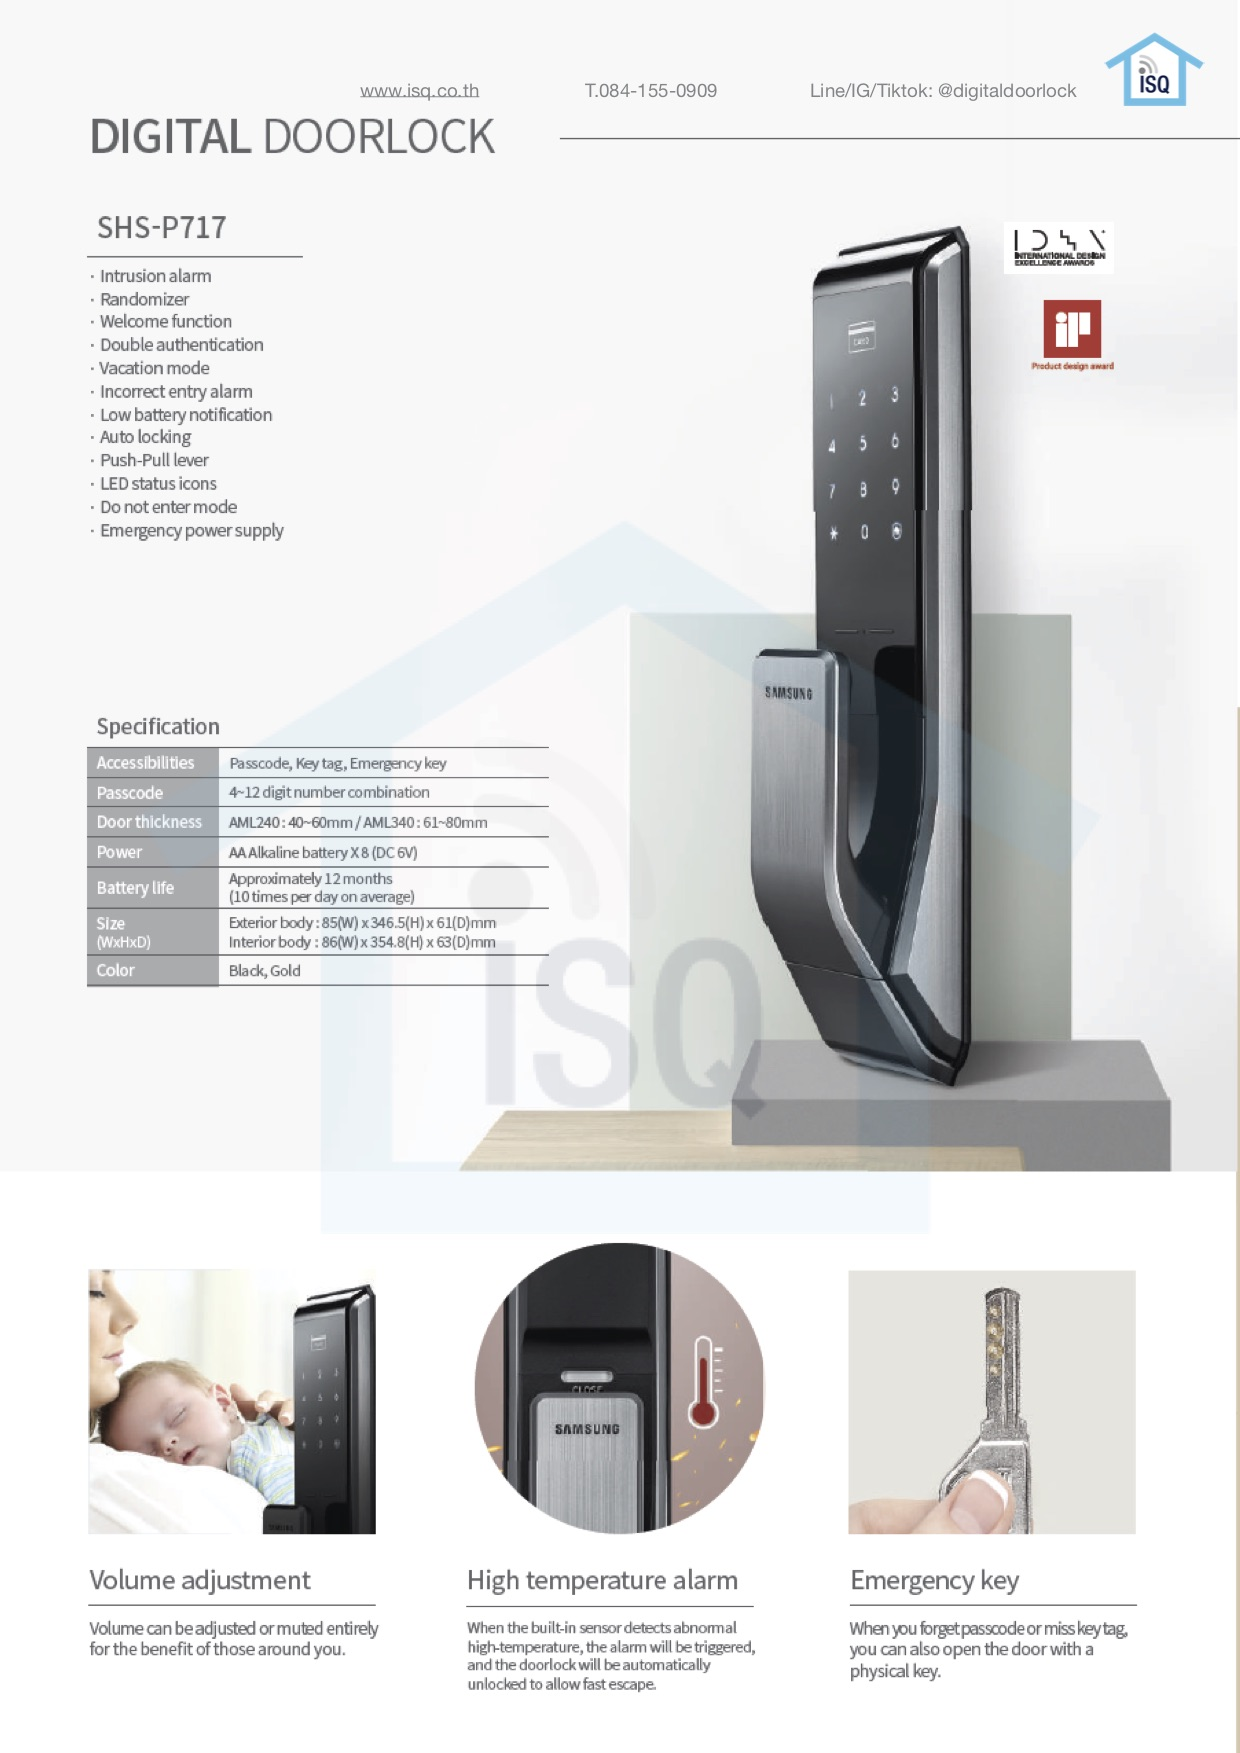 Samsung smart digital door lock SHP-DP718